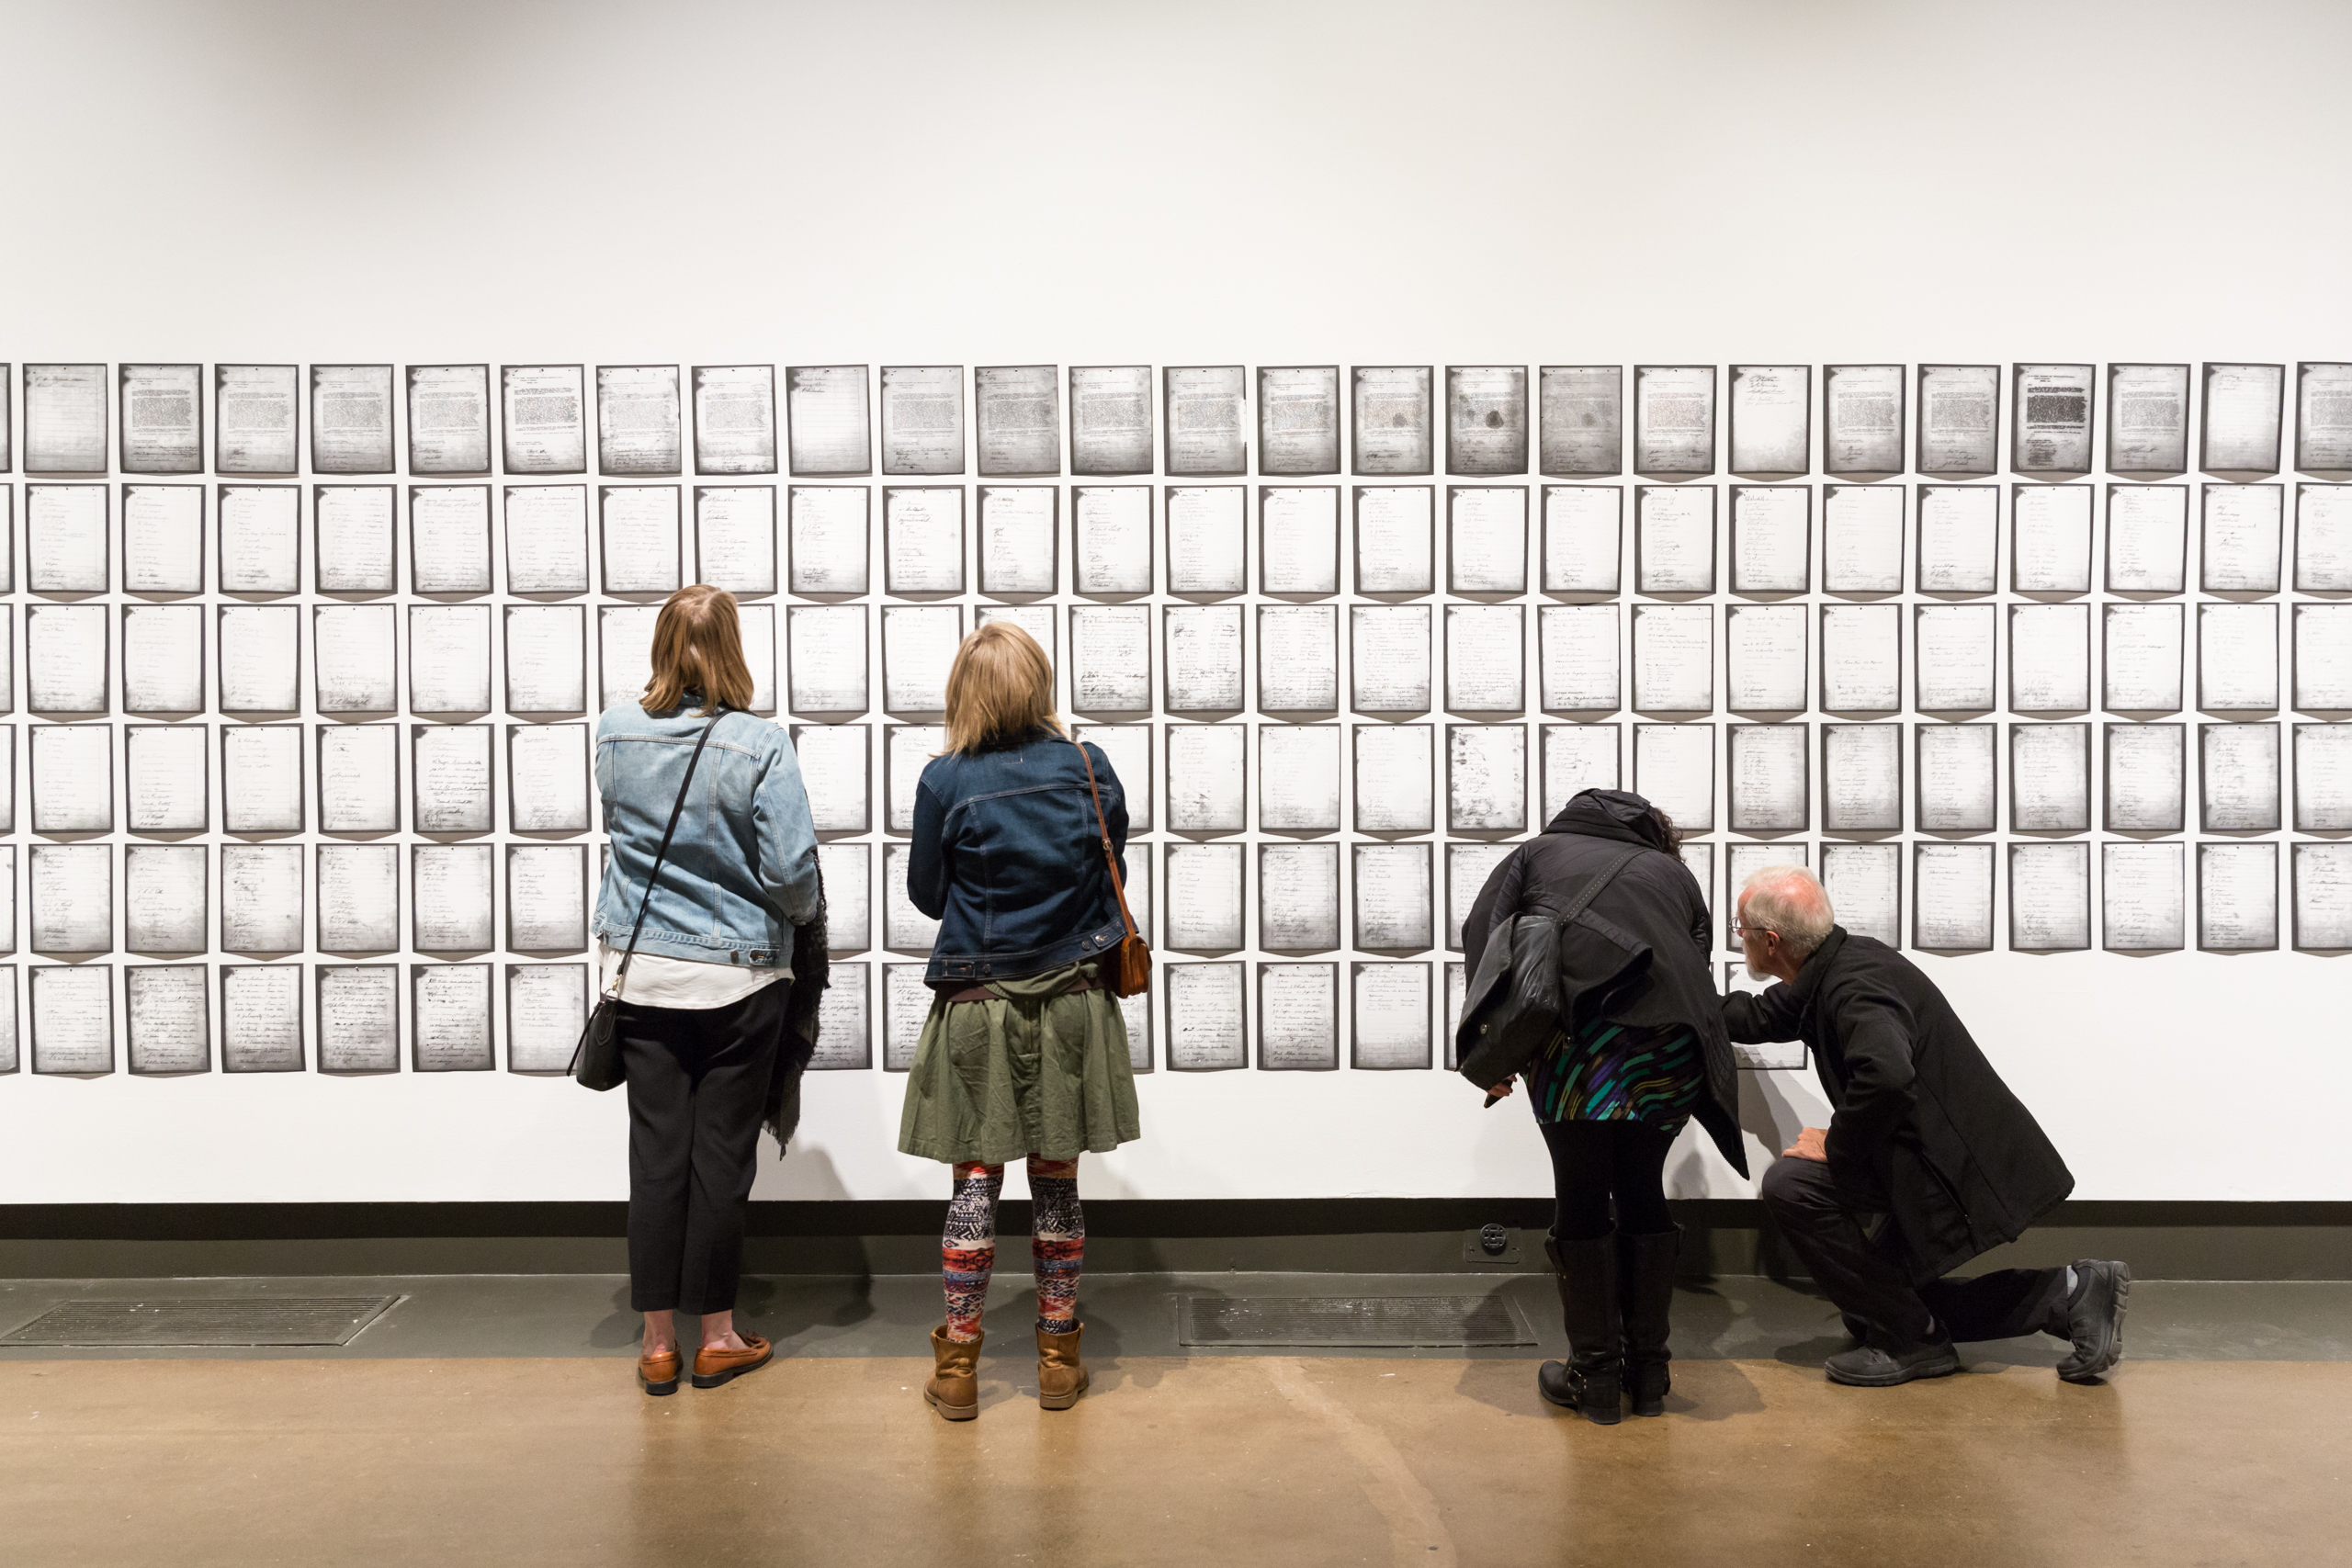 Two pairs of gallery visitors examine different portions of Deanna Bowen's 1911 Anti Creek Negro petition of over 200 pages across a wide white wall